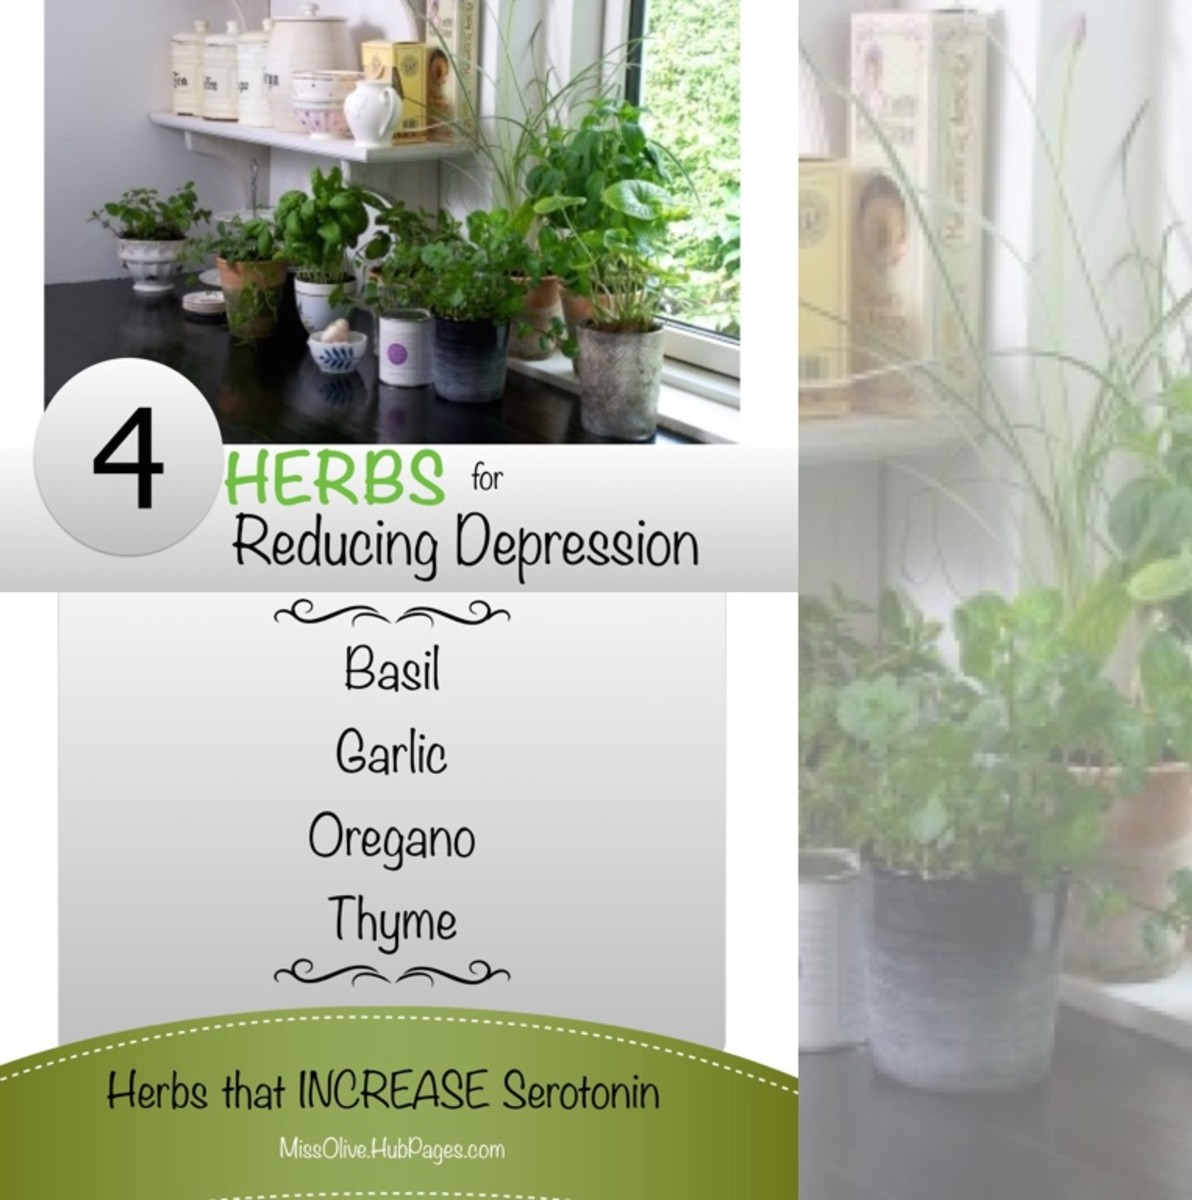 Keep these four herbs in the kitchen and use them in your recipes to help reduce depression: Basil, Garlic, Oregano and Thyme.